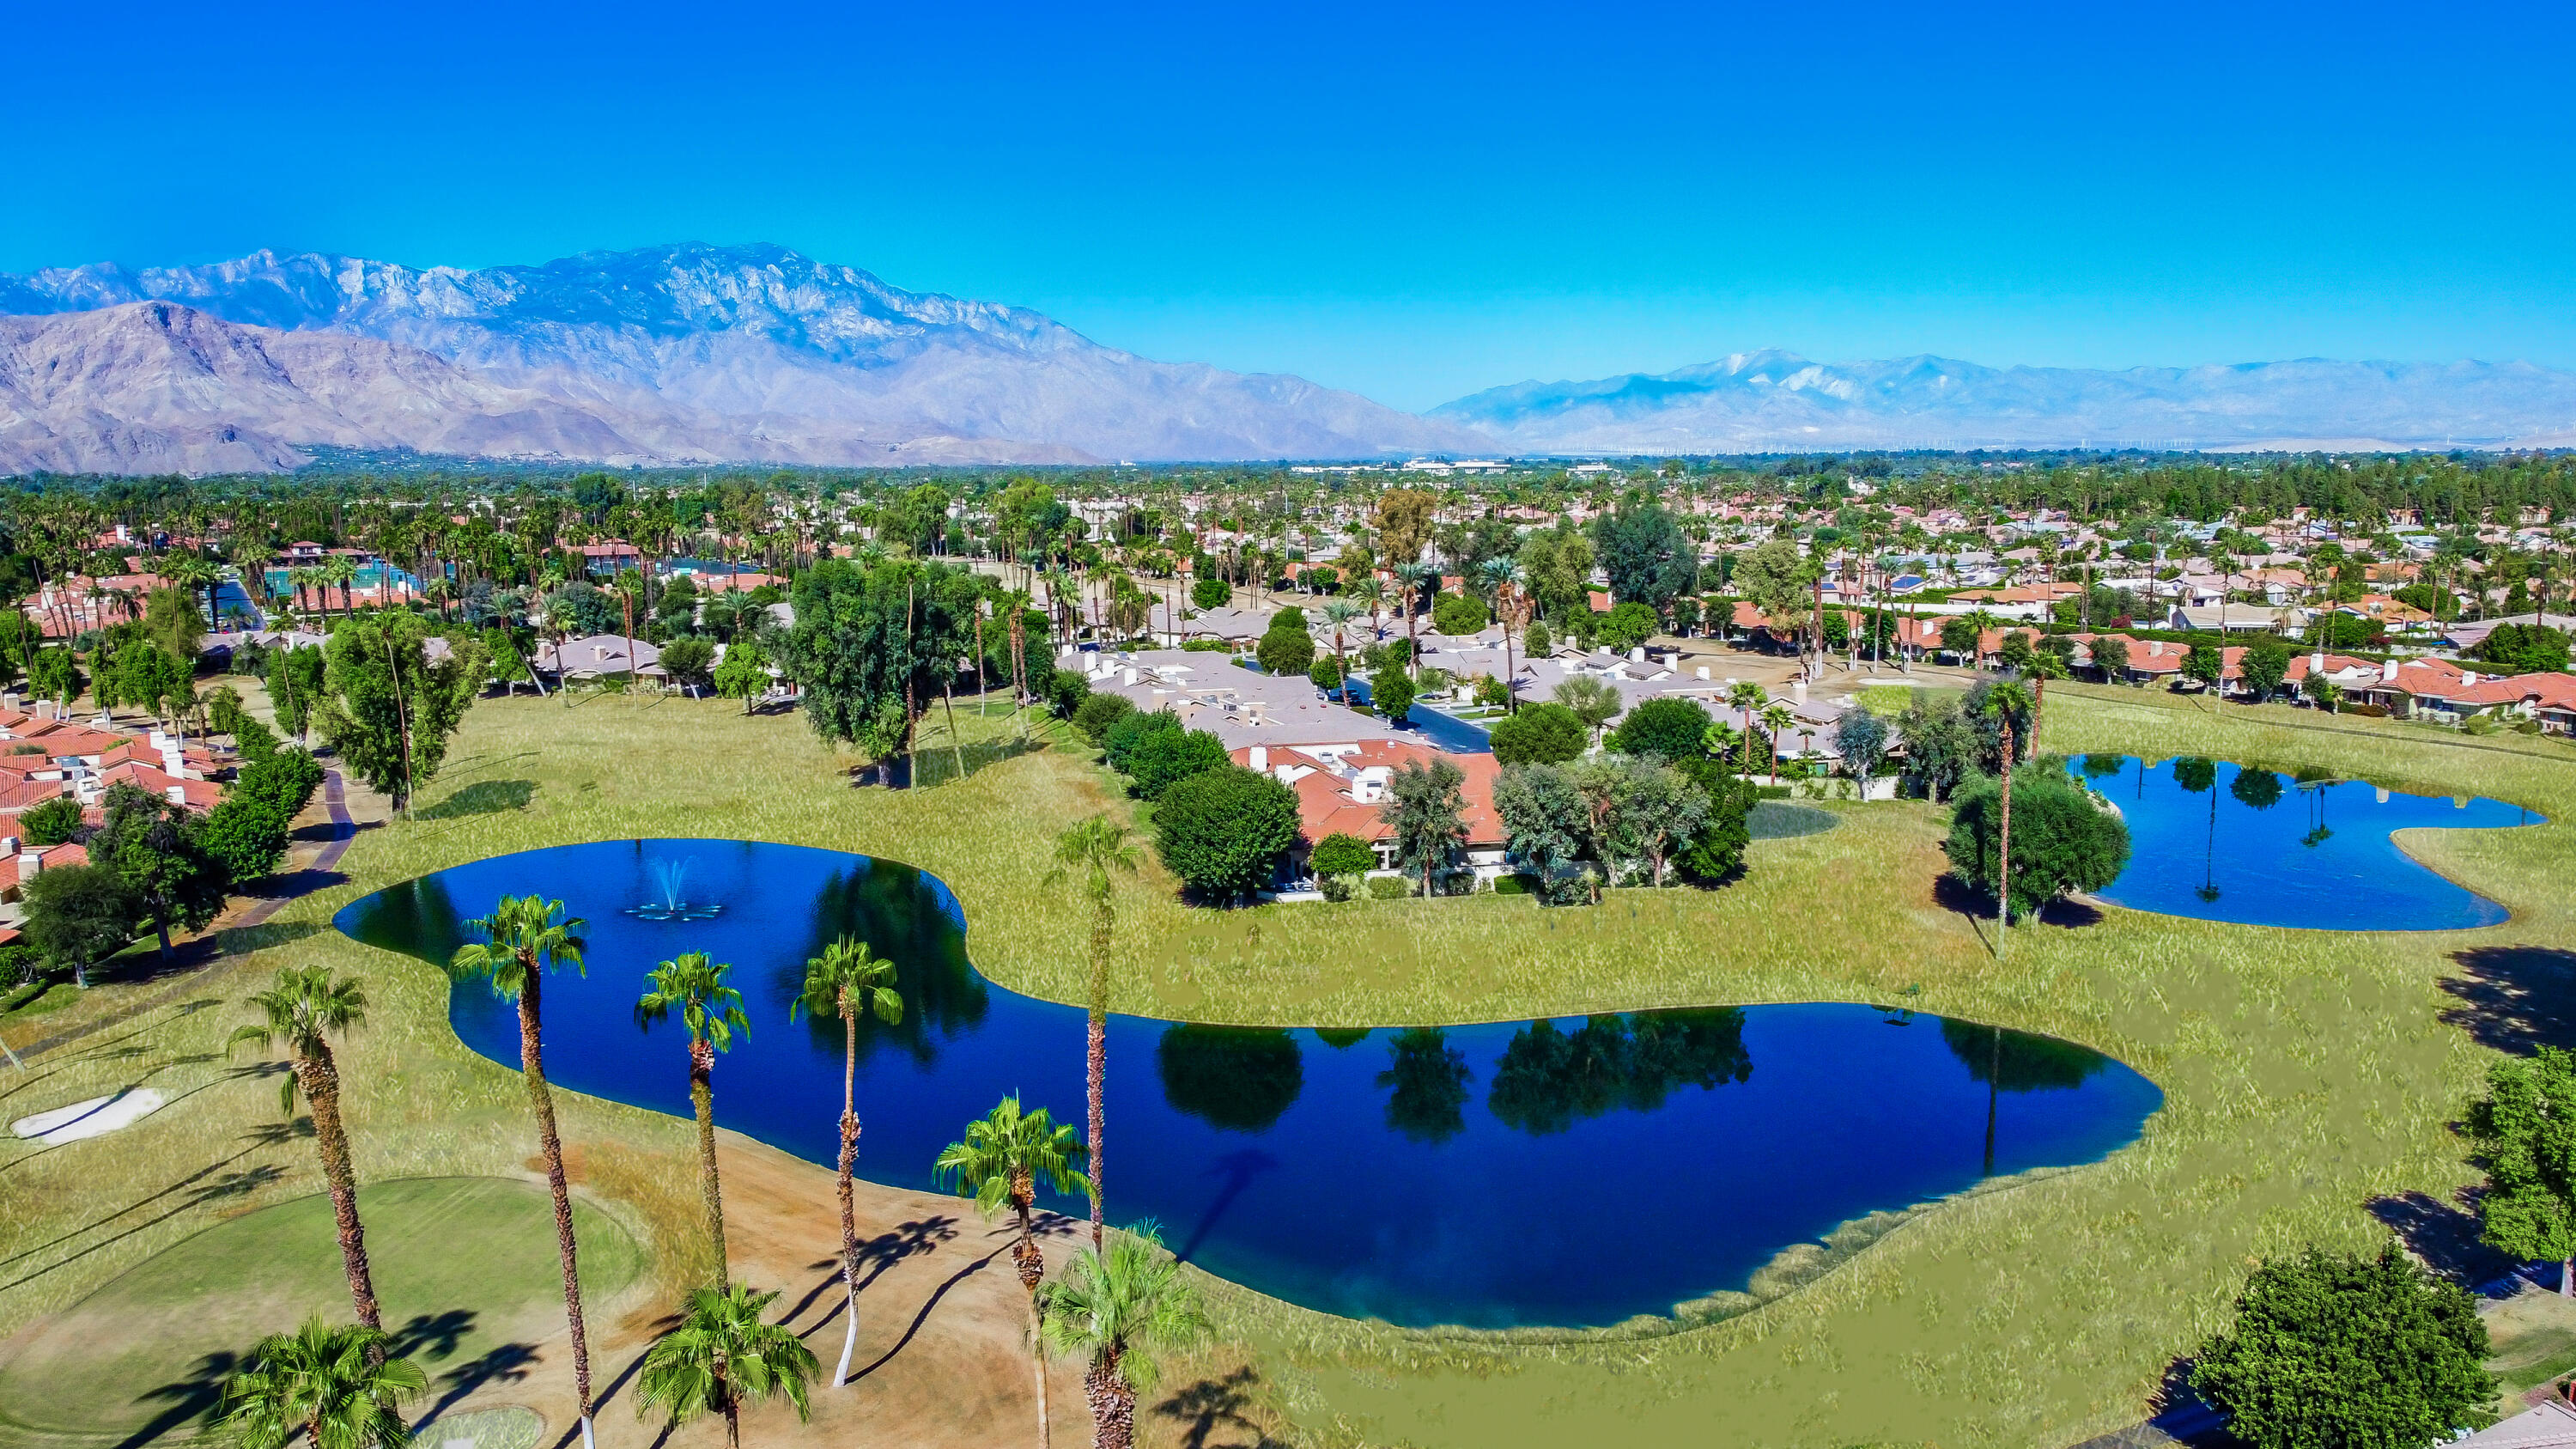 RARELY does a home become available on this private street of only 4 units. This is the most sought after location in Monterey Country Club. Eye popping views showcase the San Jacinto mountains, wide open views of golf course and two lakes with fountains. Walk into the private rose filled courtyard and enter into a beautiful 3/2 home completely remodeled with smooth ceilings and walls, custom lighting, remodeled bathrooms and kitchen. The kitchen boosts superior Italian stainless steel appliances by Bertazzoni and consist of gas range, refrigerator with french doors, ventilation over range is also Bertazzoni the dishwasher is Bosch. Custom white cabinets have been ordered and will be in place by the end of Oct. Meanwhile open shelving and custom cabinets have easy pull outs.  Home explodes with natural light and atrium has been left to bring in extra light and air especially the second bedroom which also makes a wonderful retreat. Brand new HVAC unit has been  installed also Smart/Nest thermostat. Pool? You won't believe the pool just steps away at the end of the street so private that no ones knows it is there. You have to experience this home to enjoy the love and dedication that went into making it so special. The extended patio with electronic awnings is just one of the things that gives you a very special feeling of contentment. When you sit out on the patio with your morning coffee or your favorite evening  beverage, I just know what you will say, Awwwww, Life is Good!